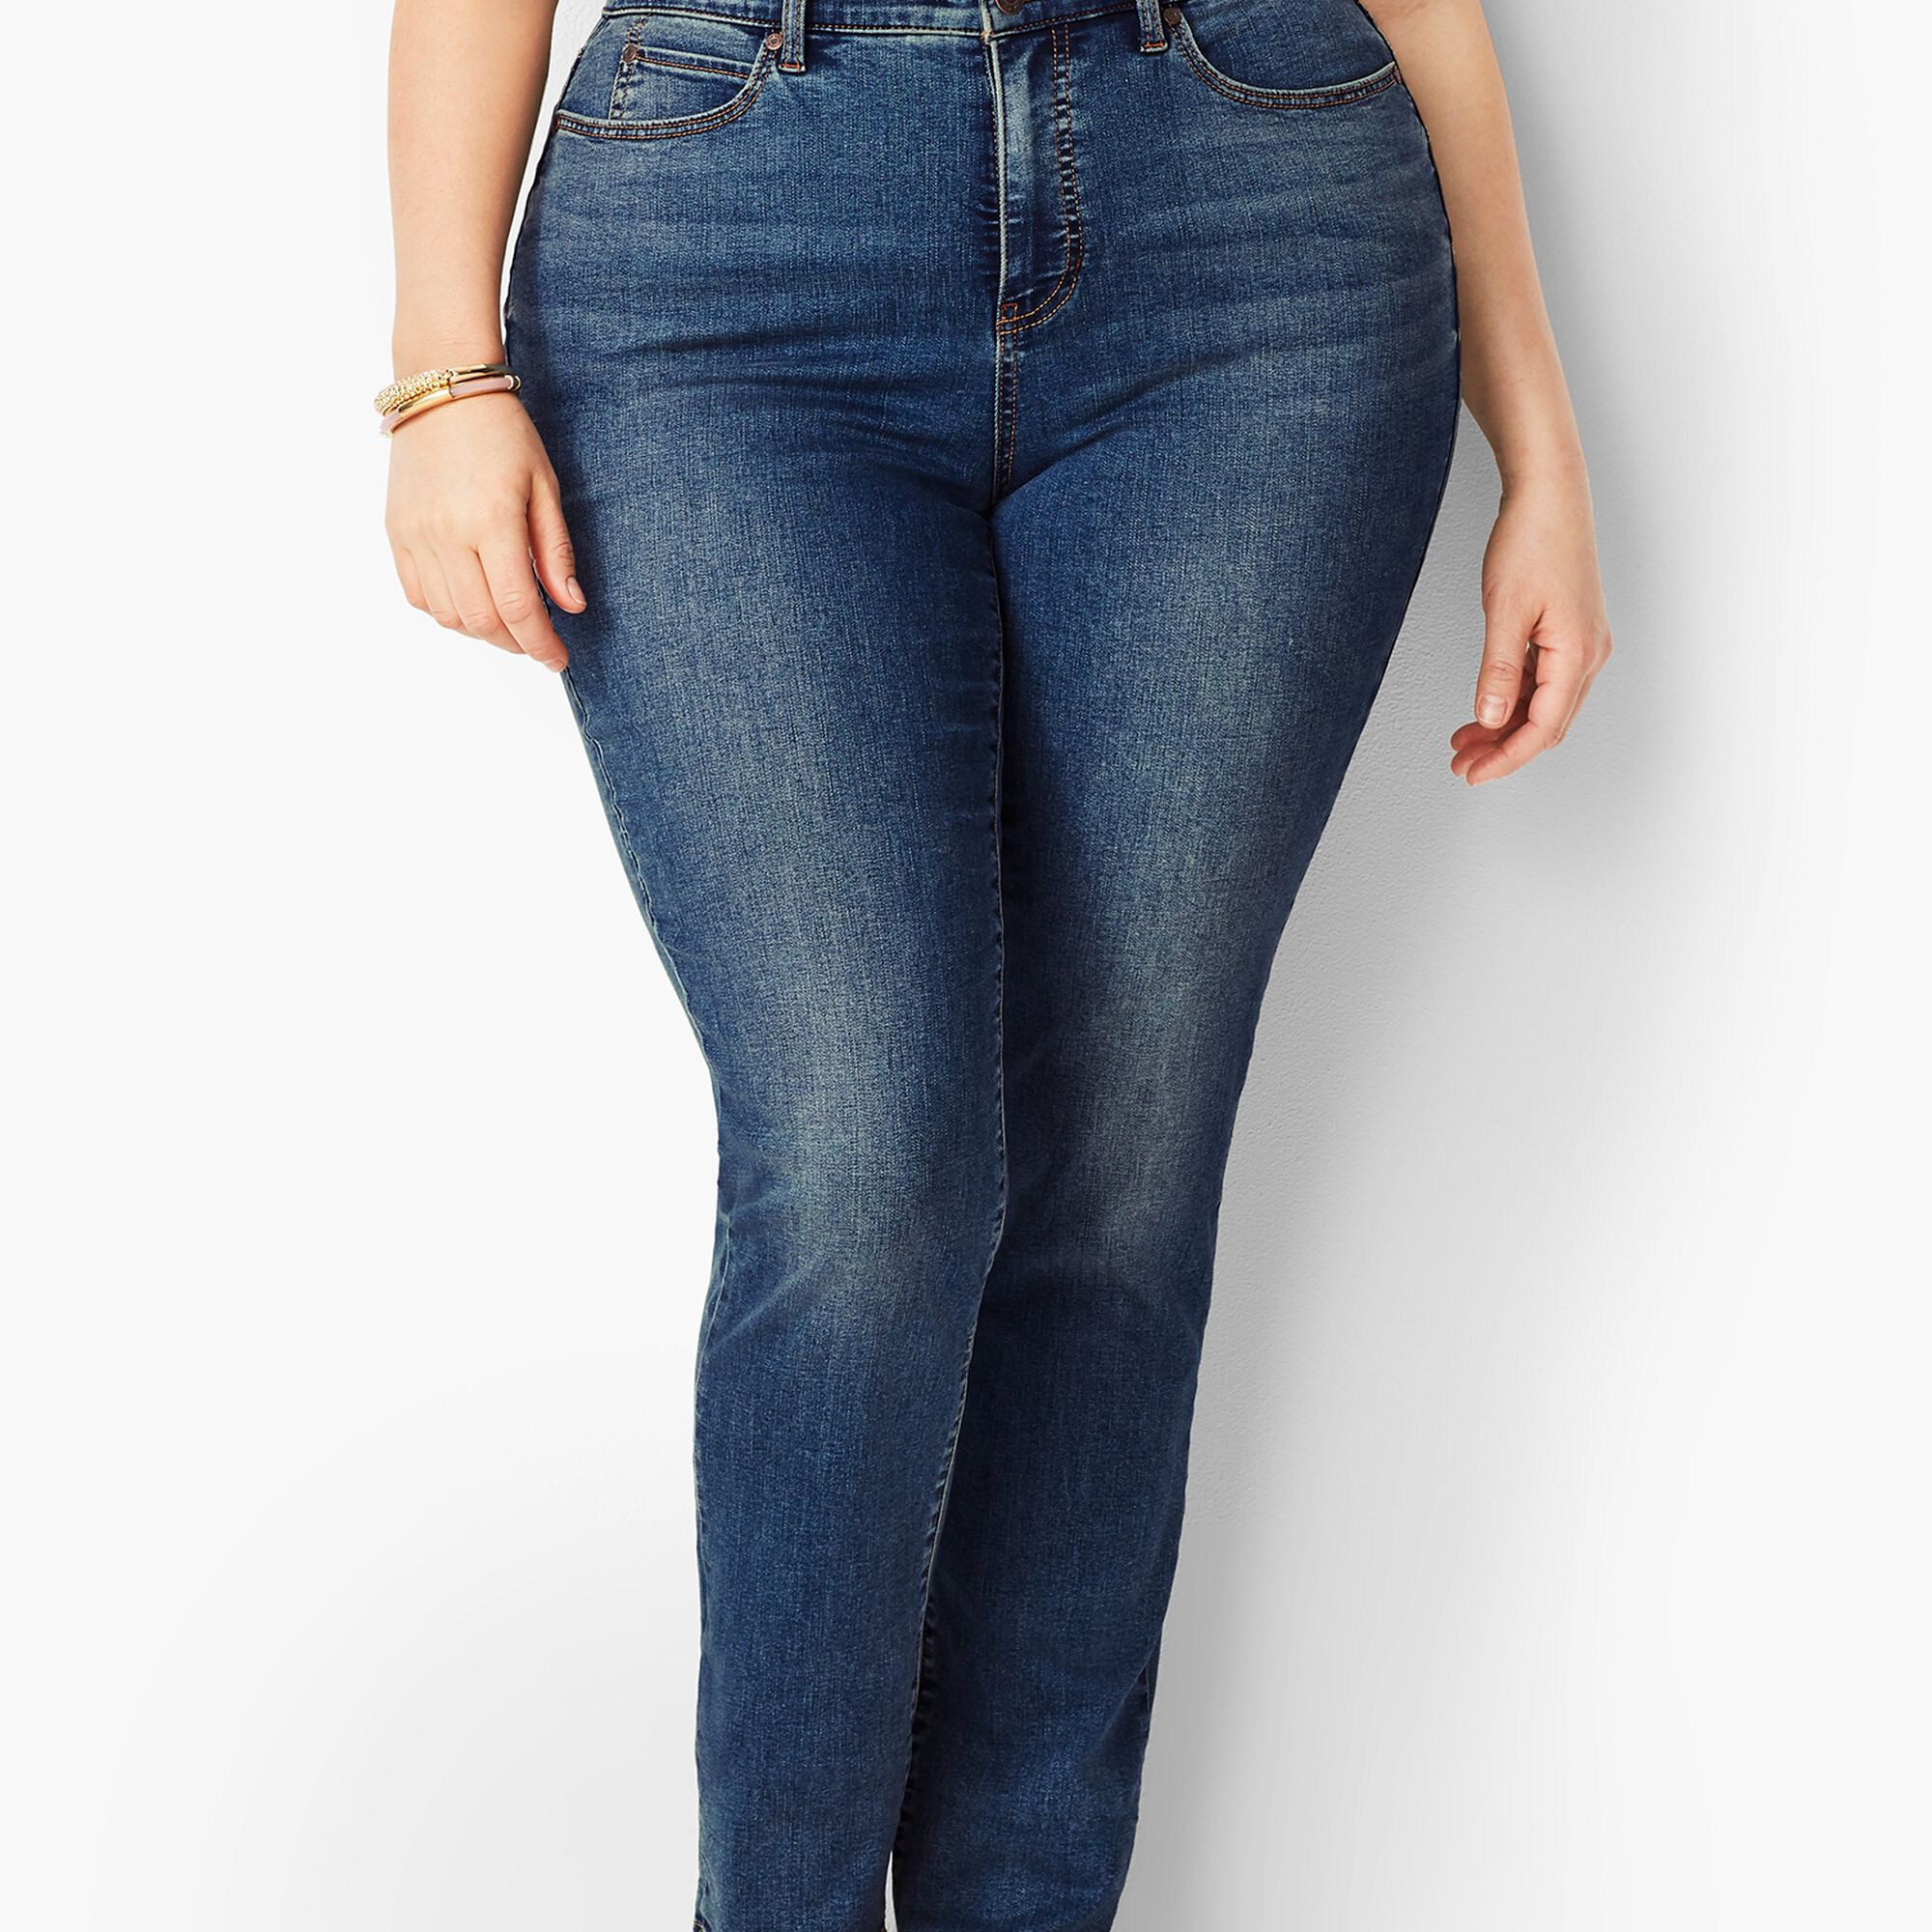 c3d24551c4d Plus Size Exclusive High-Rise Straight-Leg Jeans - Curvy Fit Baxter ...